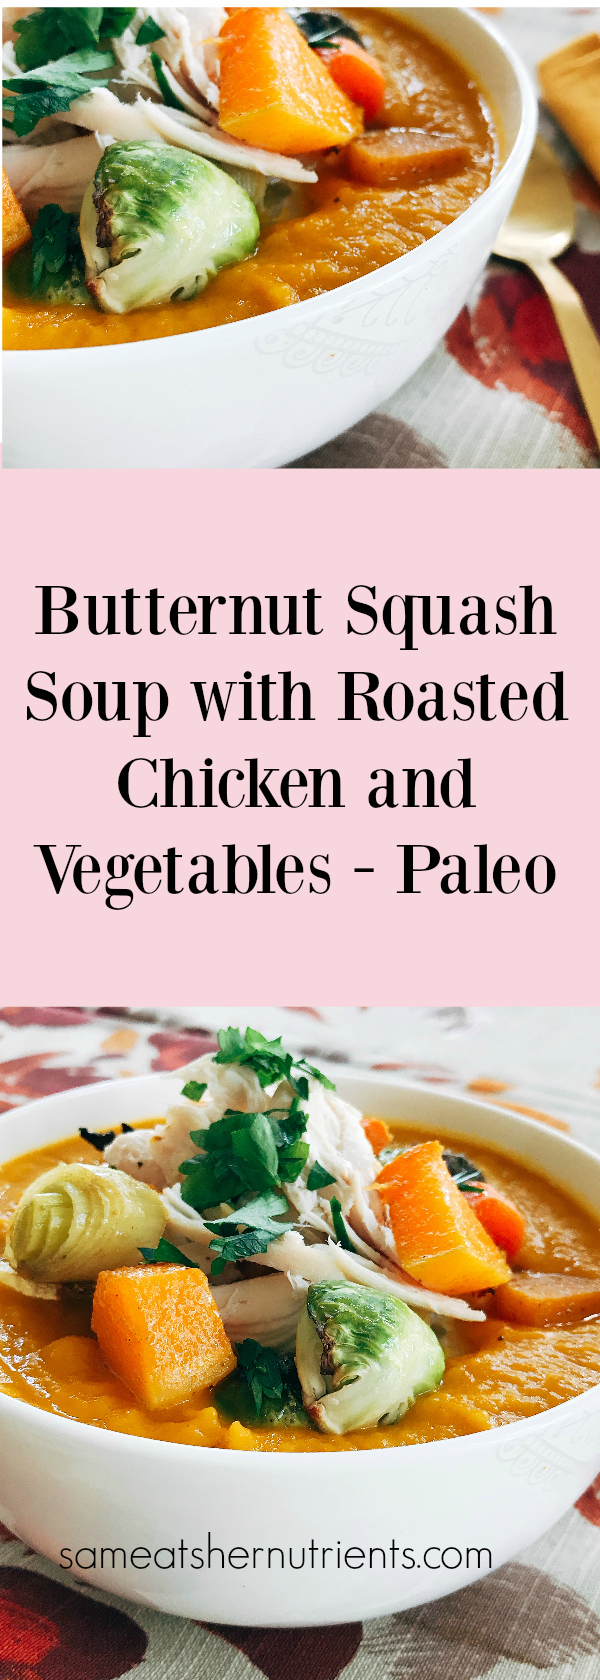 Butternut Squash Soup with Roasted Chicken and Vegetables - Paleo